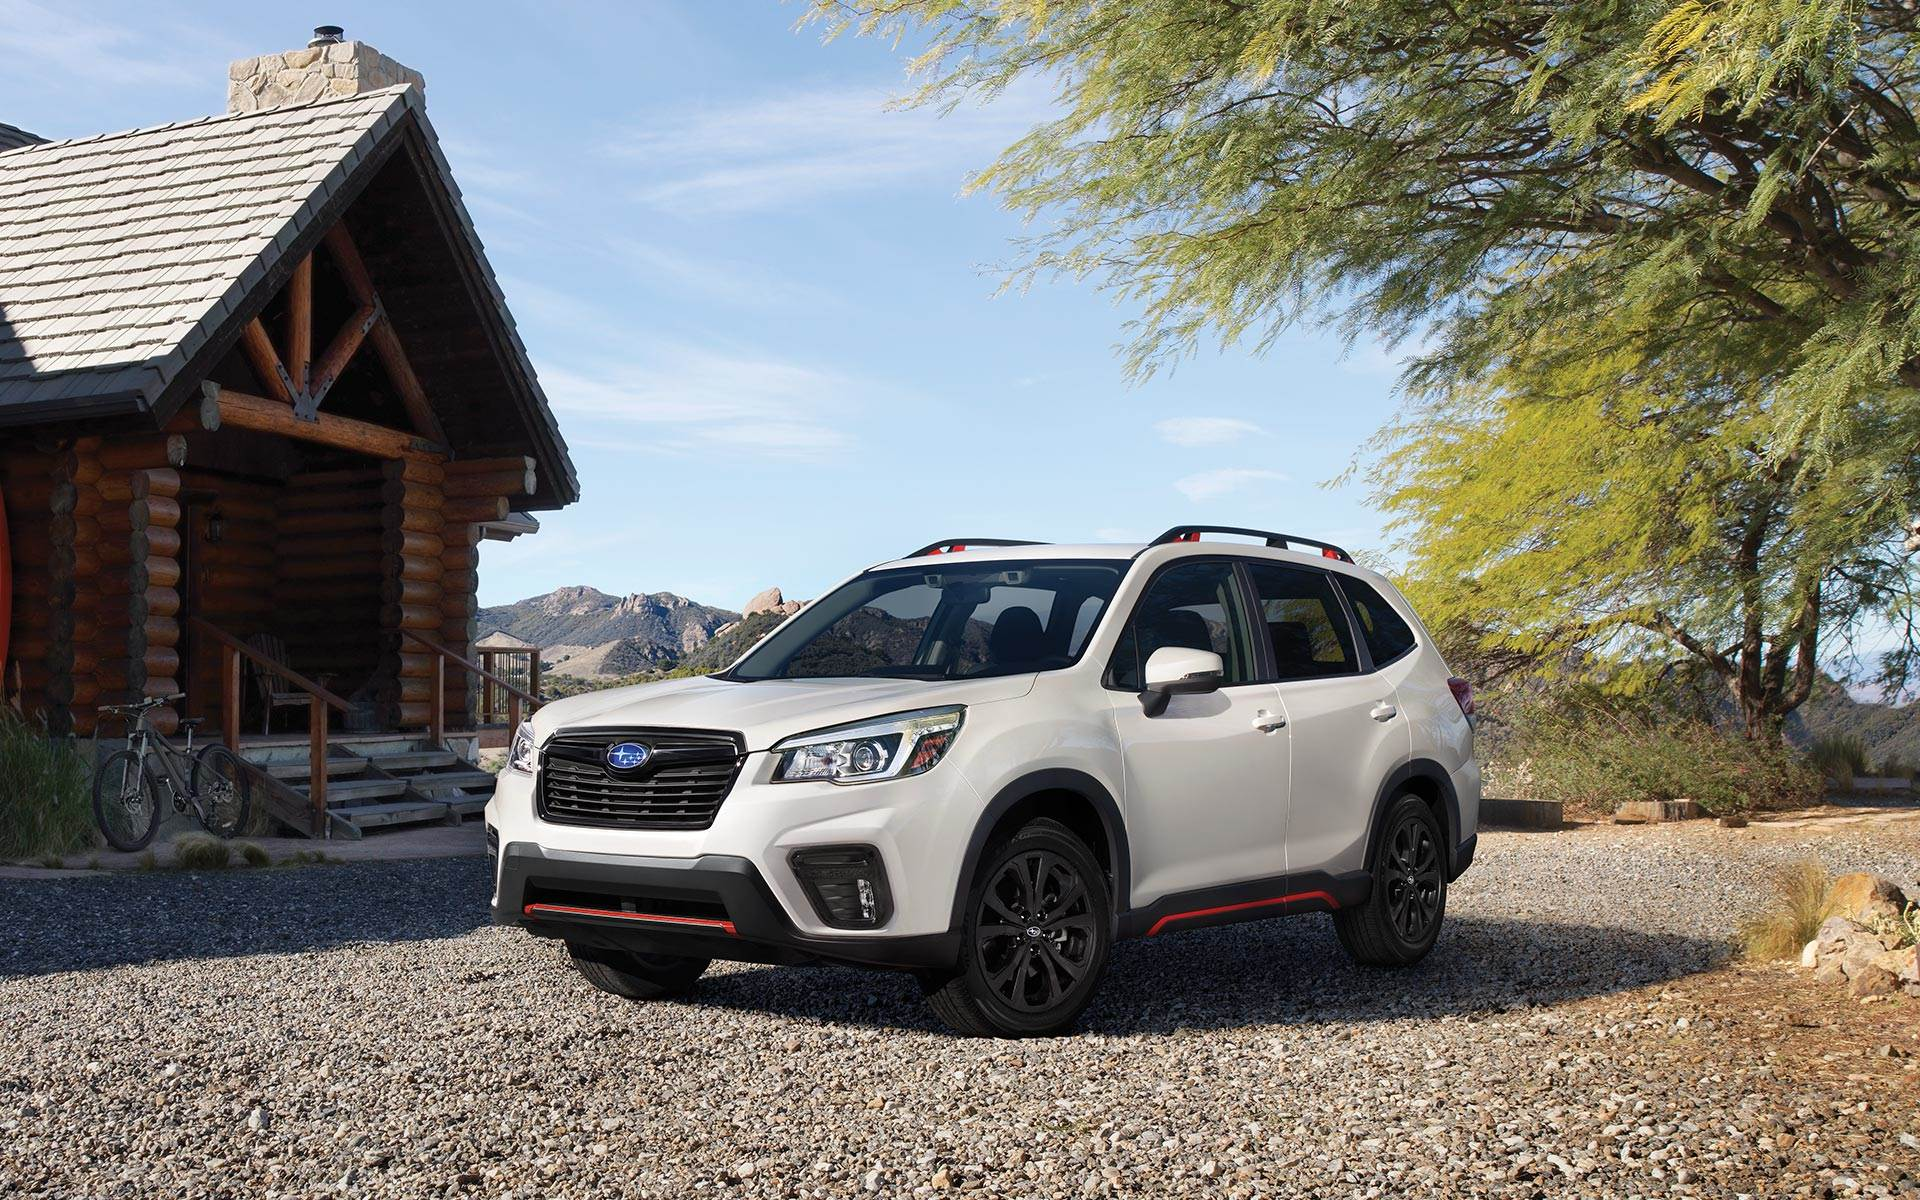 Compare The Subaru Forester To The Nissan Rogue To See Which SUV Would Be  Right For You